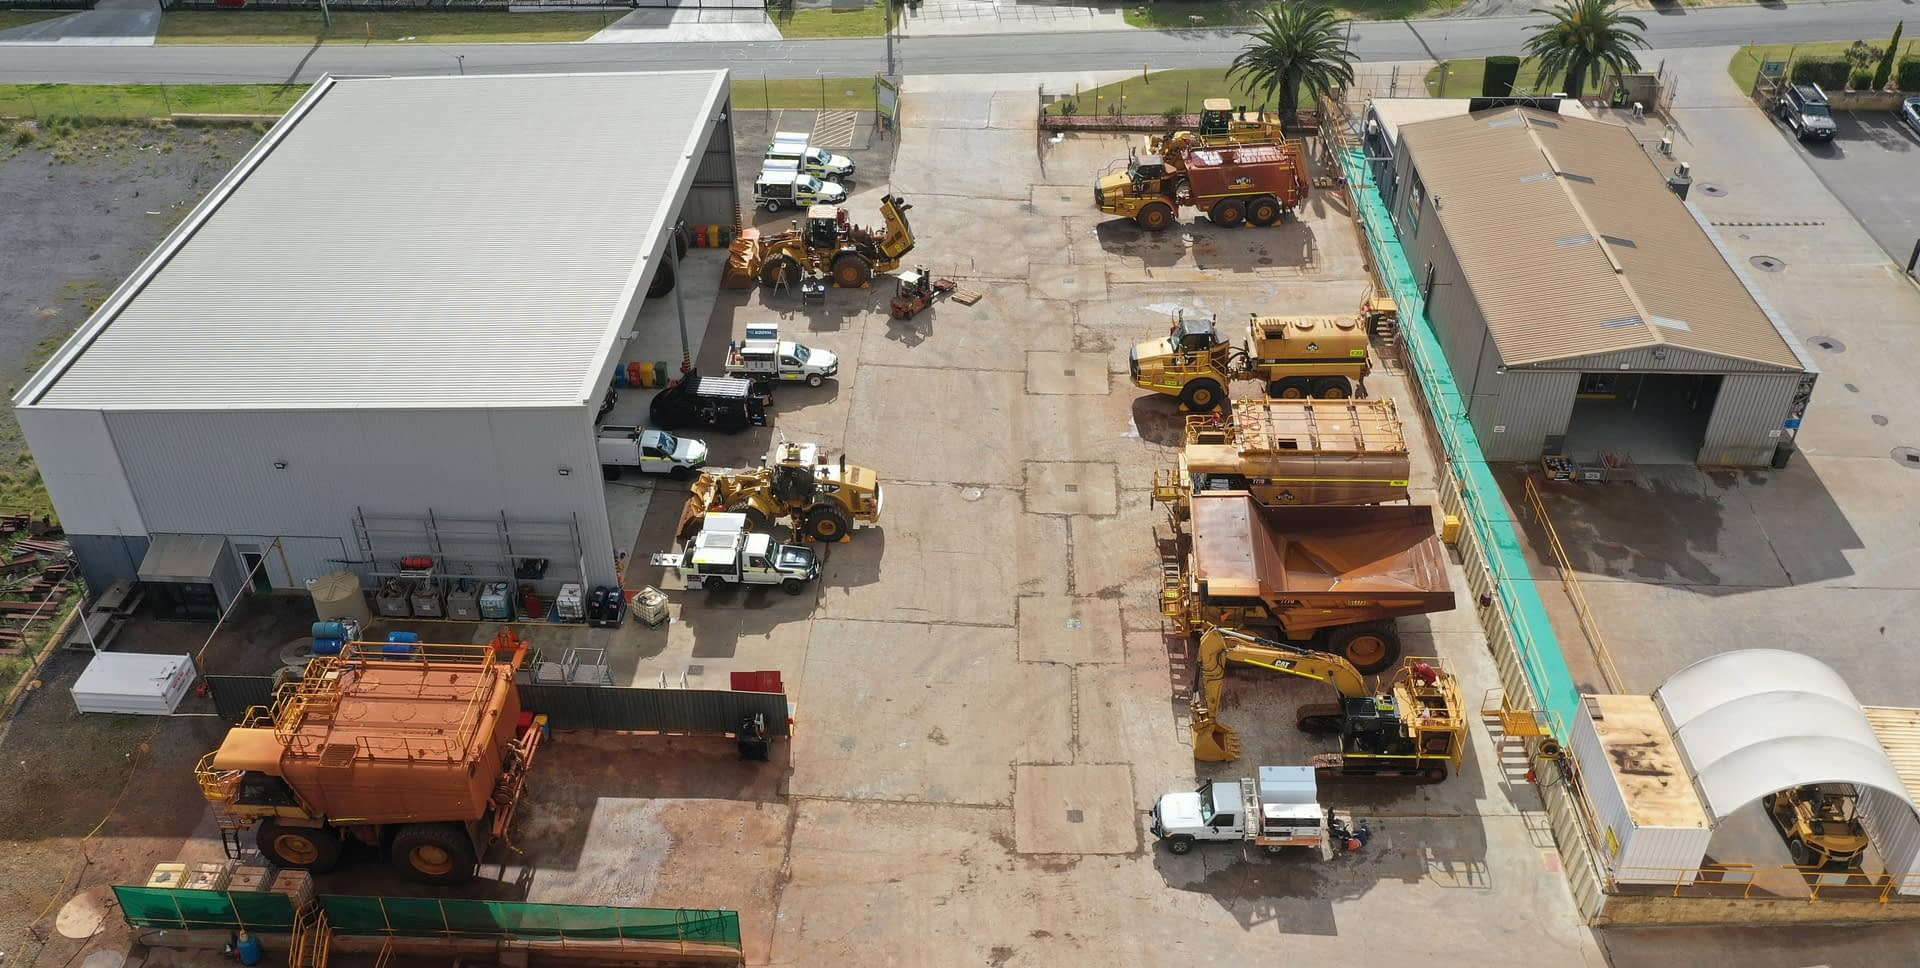 Drone View of Naval Base Maintenance Facility